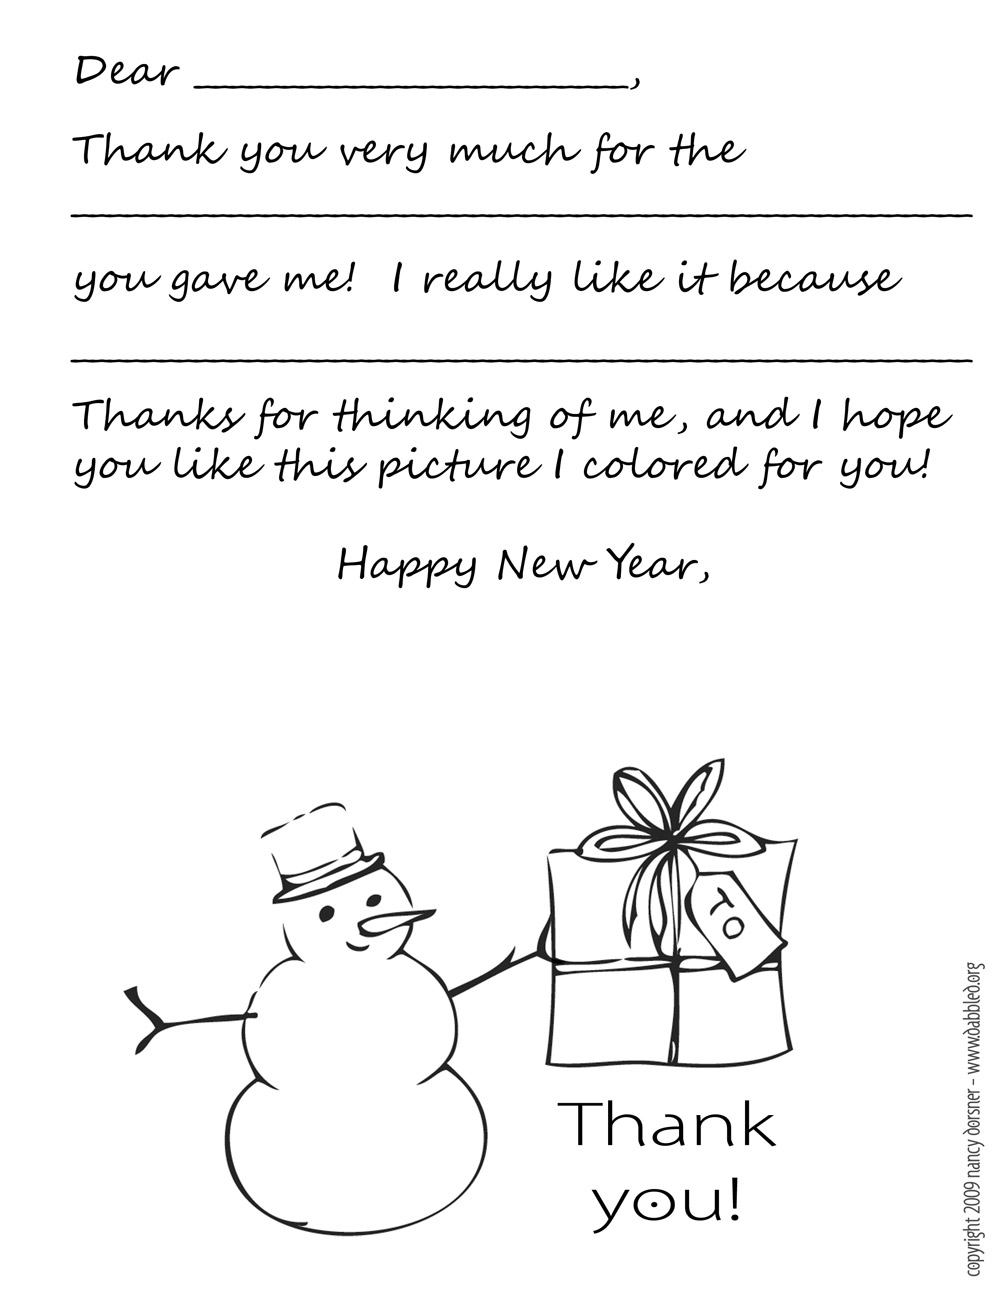 printable holiday thank you note template for kids black and white version color your own snowman